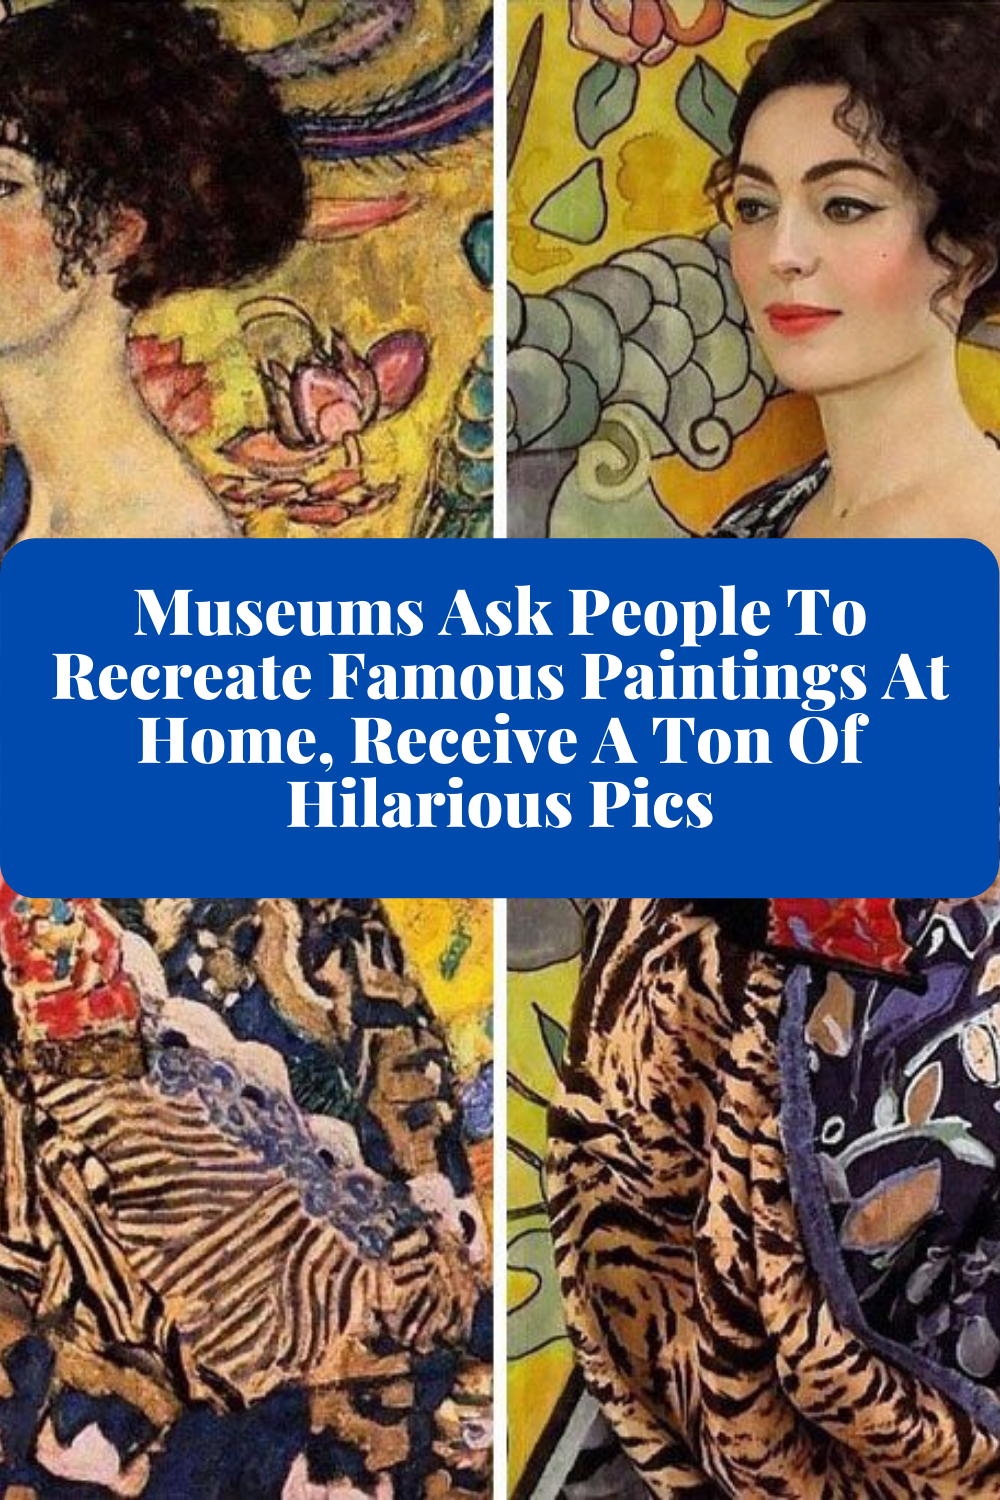 Museums Ask People To Recreate Famous Paintings At Home Receive A Ton Of Hilarious Pics In 2020 Hilarious Funny Pictures Famous